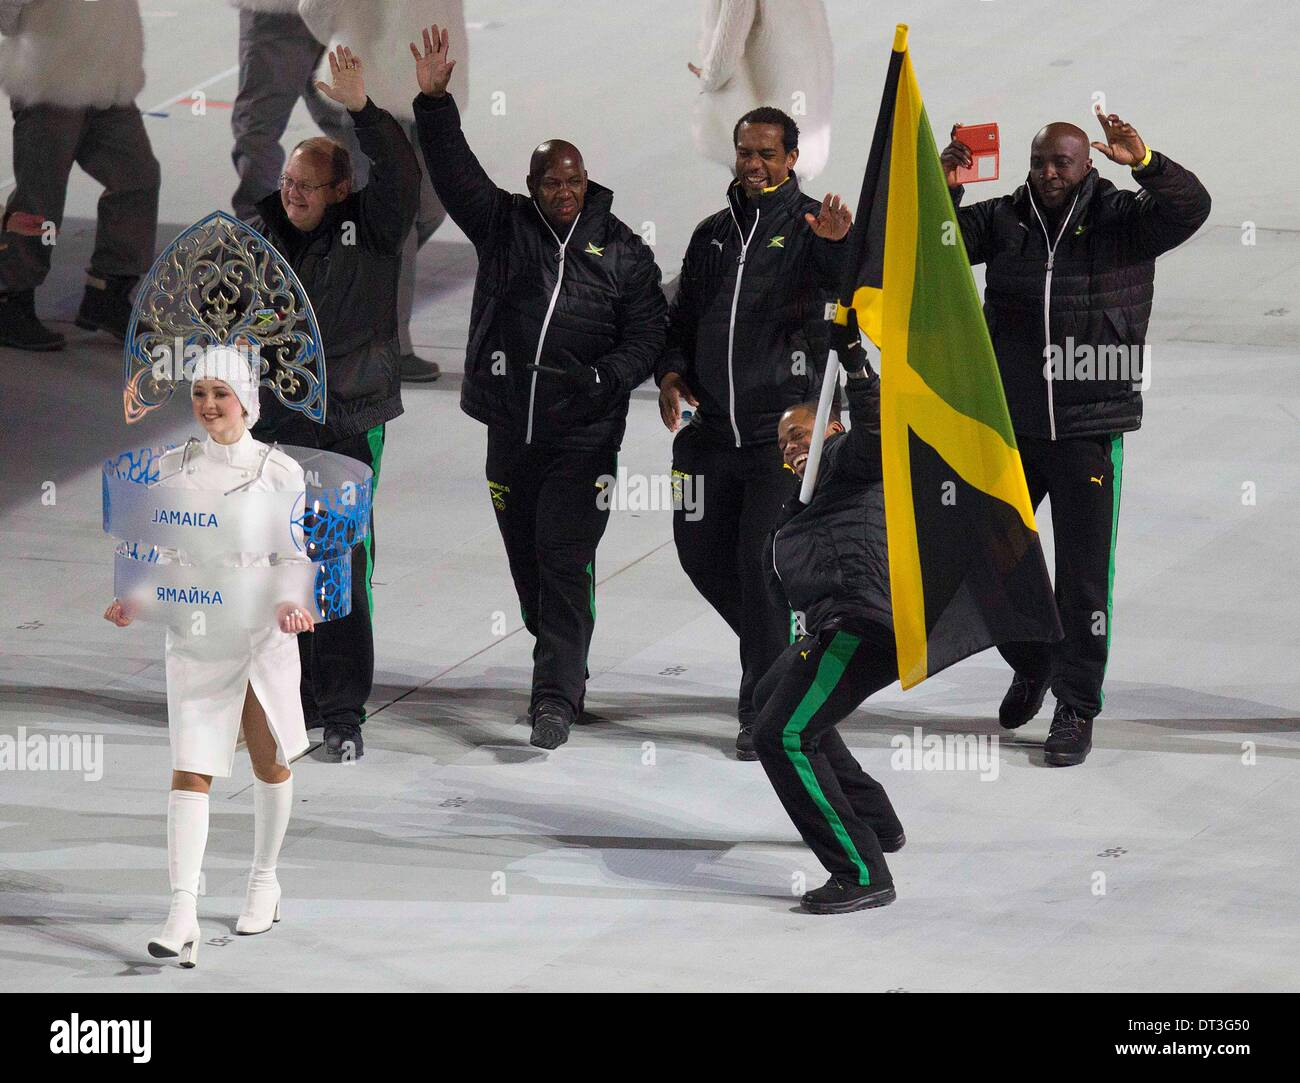 Jamaican Bobsled High Resolution Stock Photography And Images Alamy